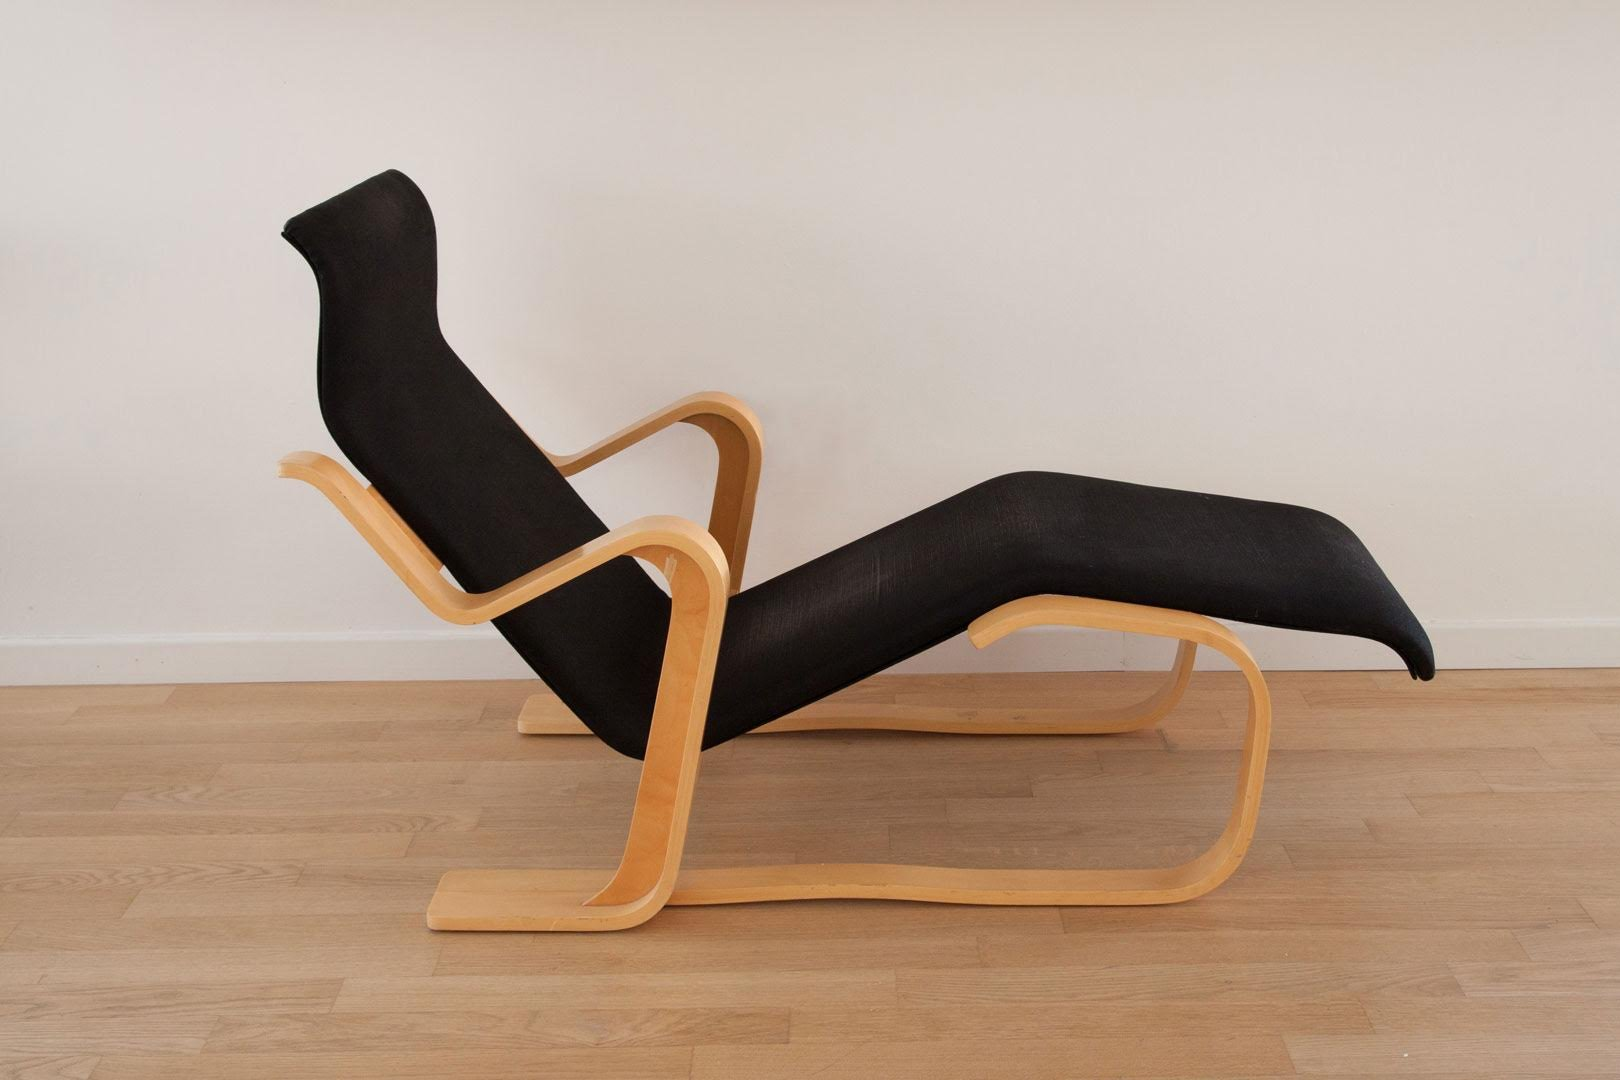 Vintage chaise lounge by marcel breuer 1930s for sale at for 1930s chaise lounge